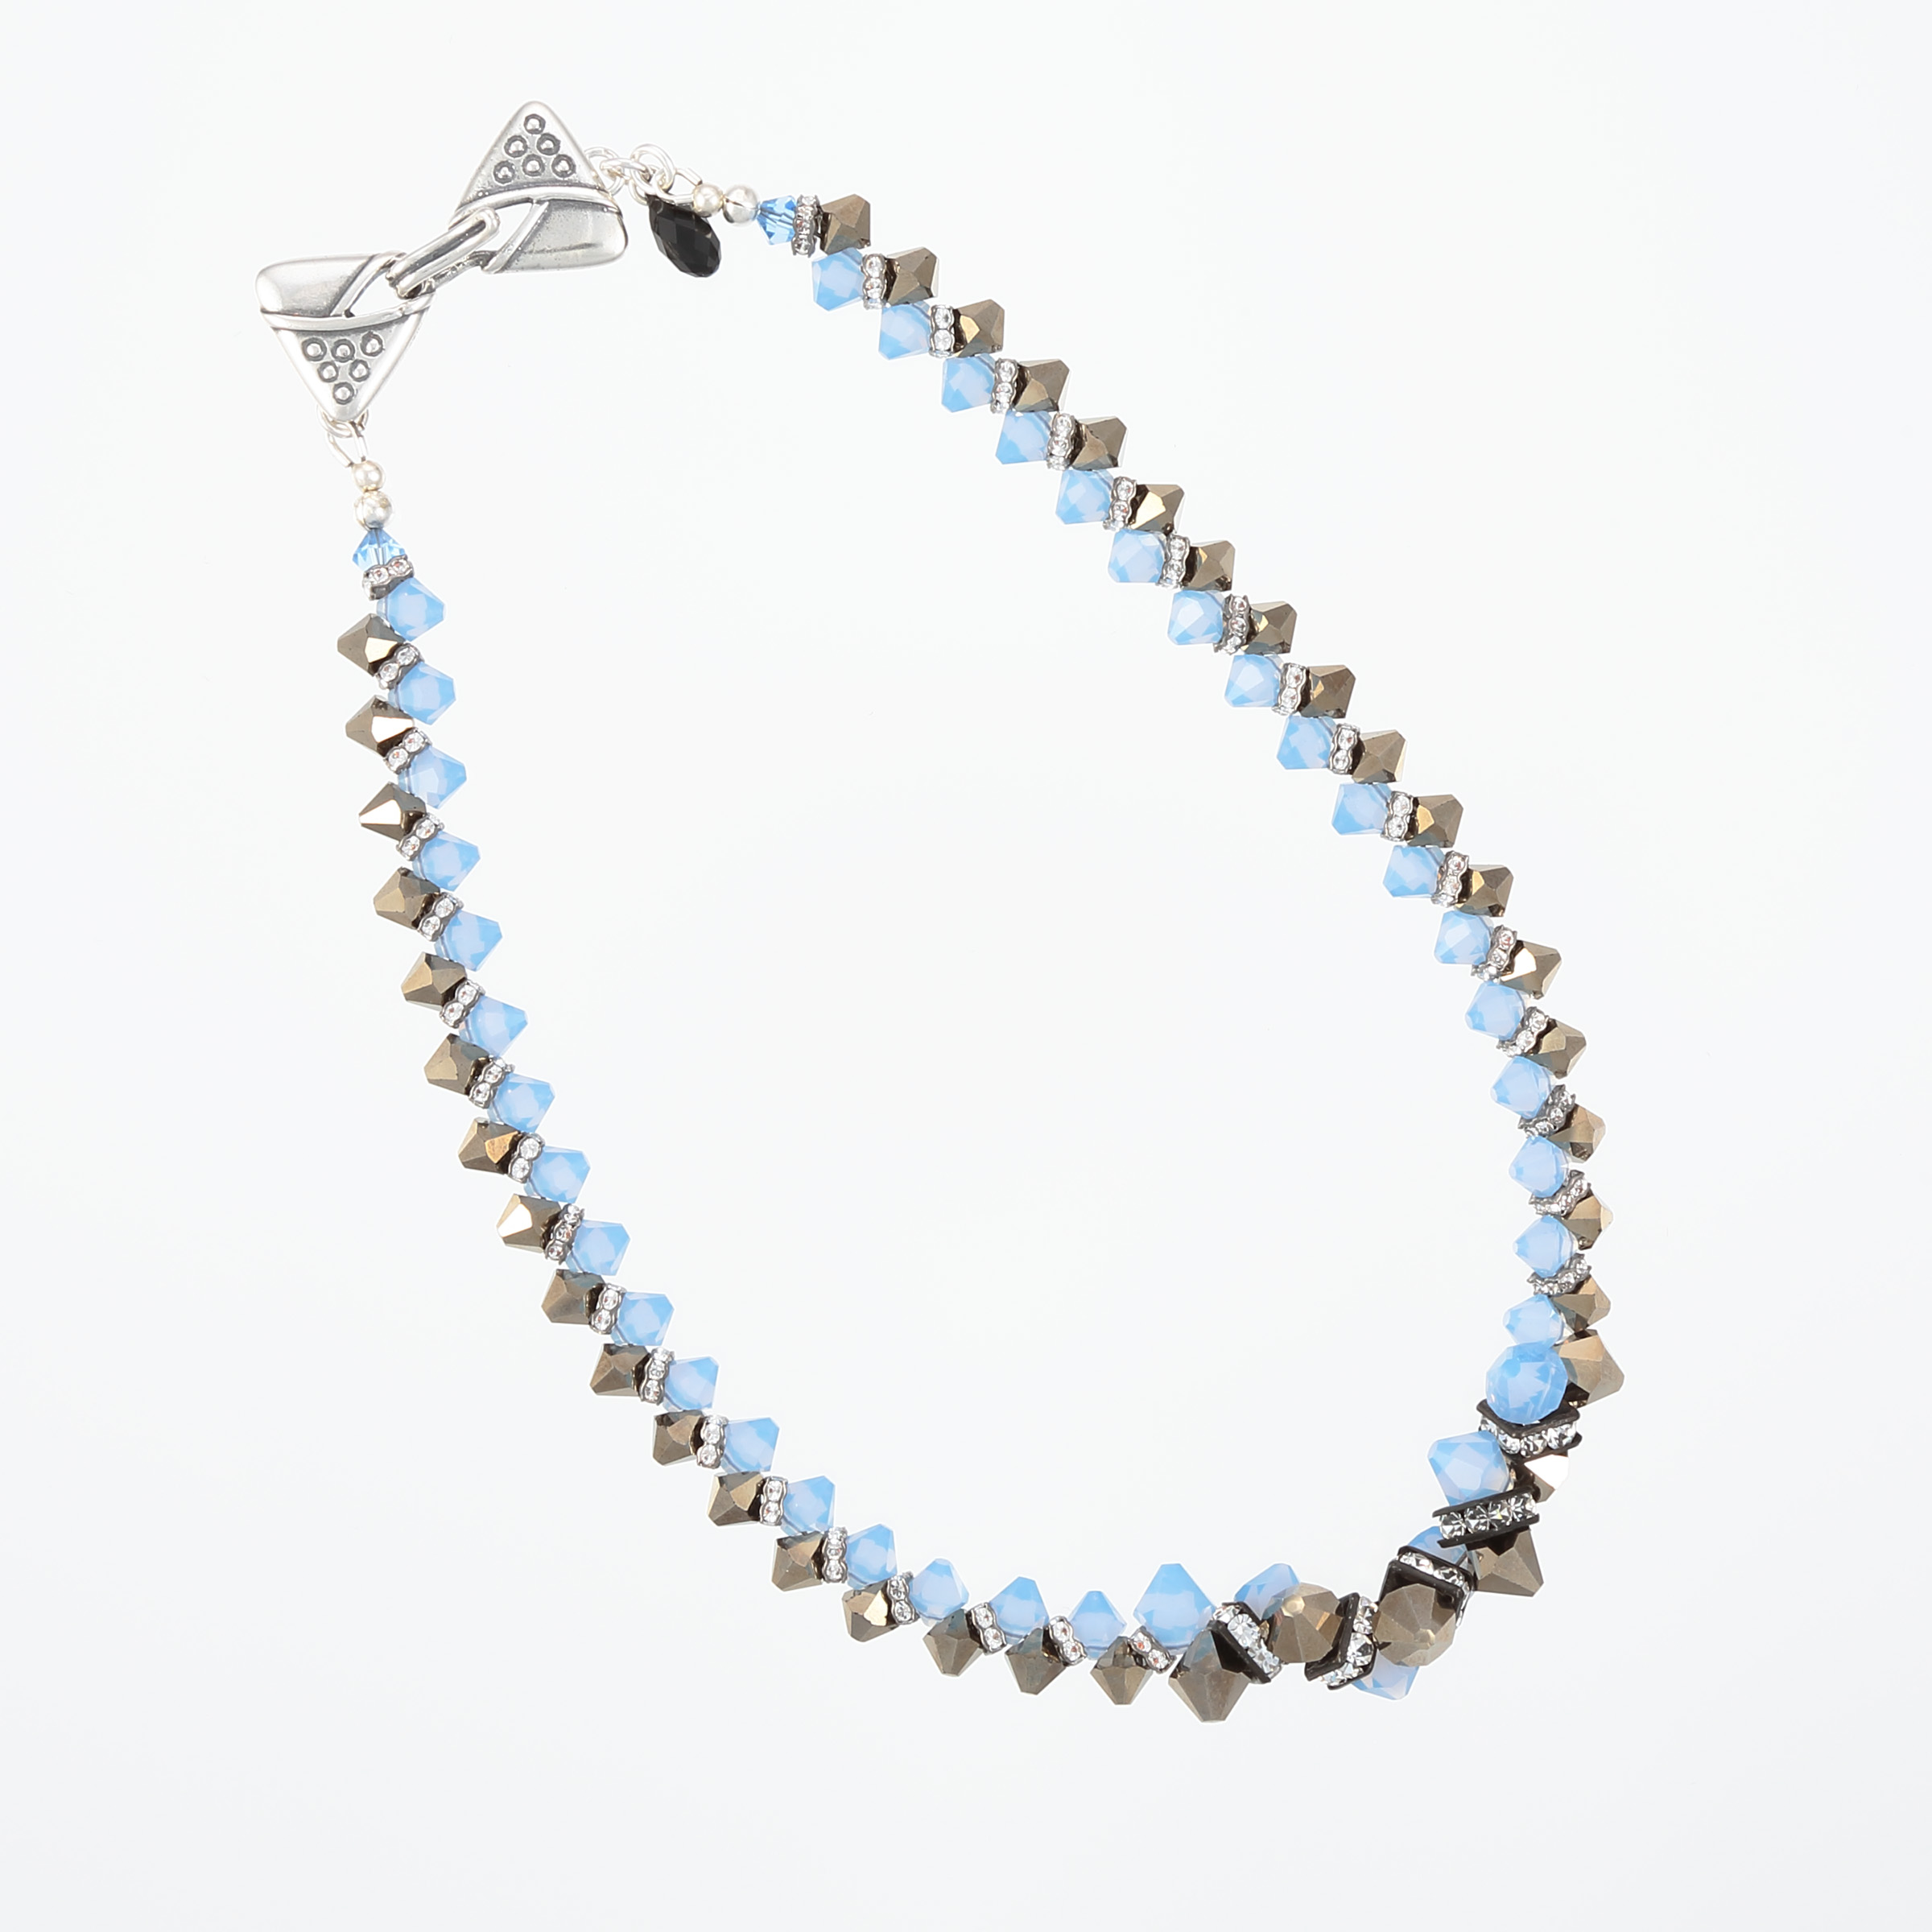 ZIPPER NECKLACE- blue, grey, gun metal Swarovski crystals with unique sterling silver clasp